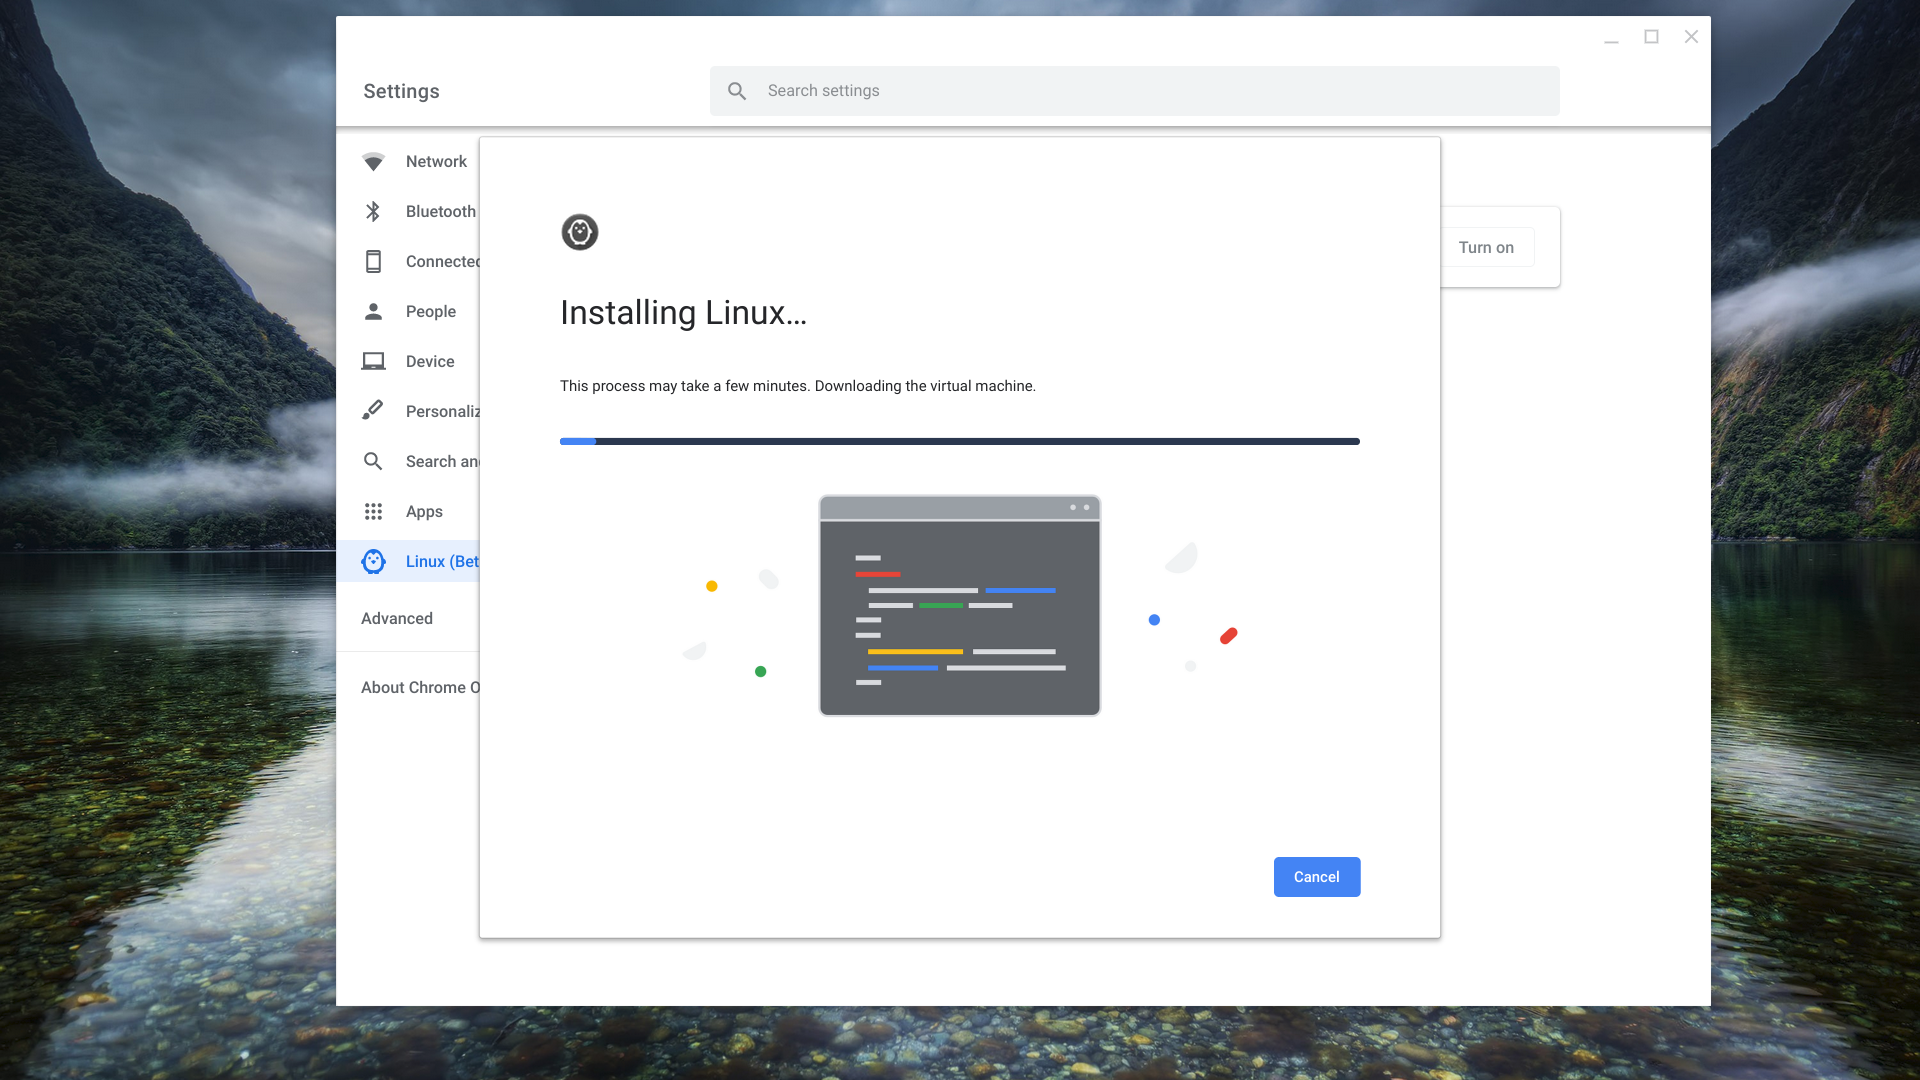 Getting Started With Linux Apps On Your Chromebook